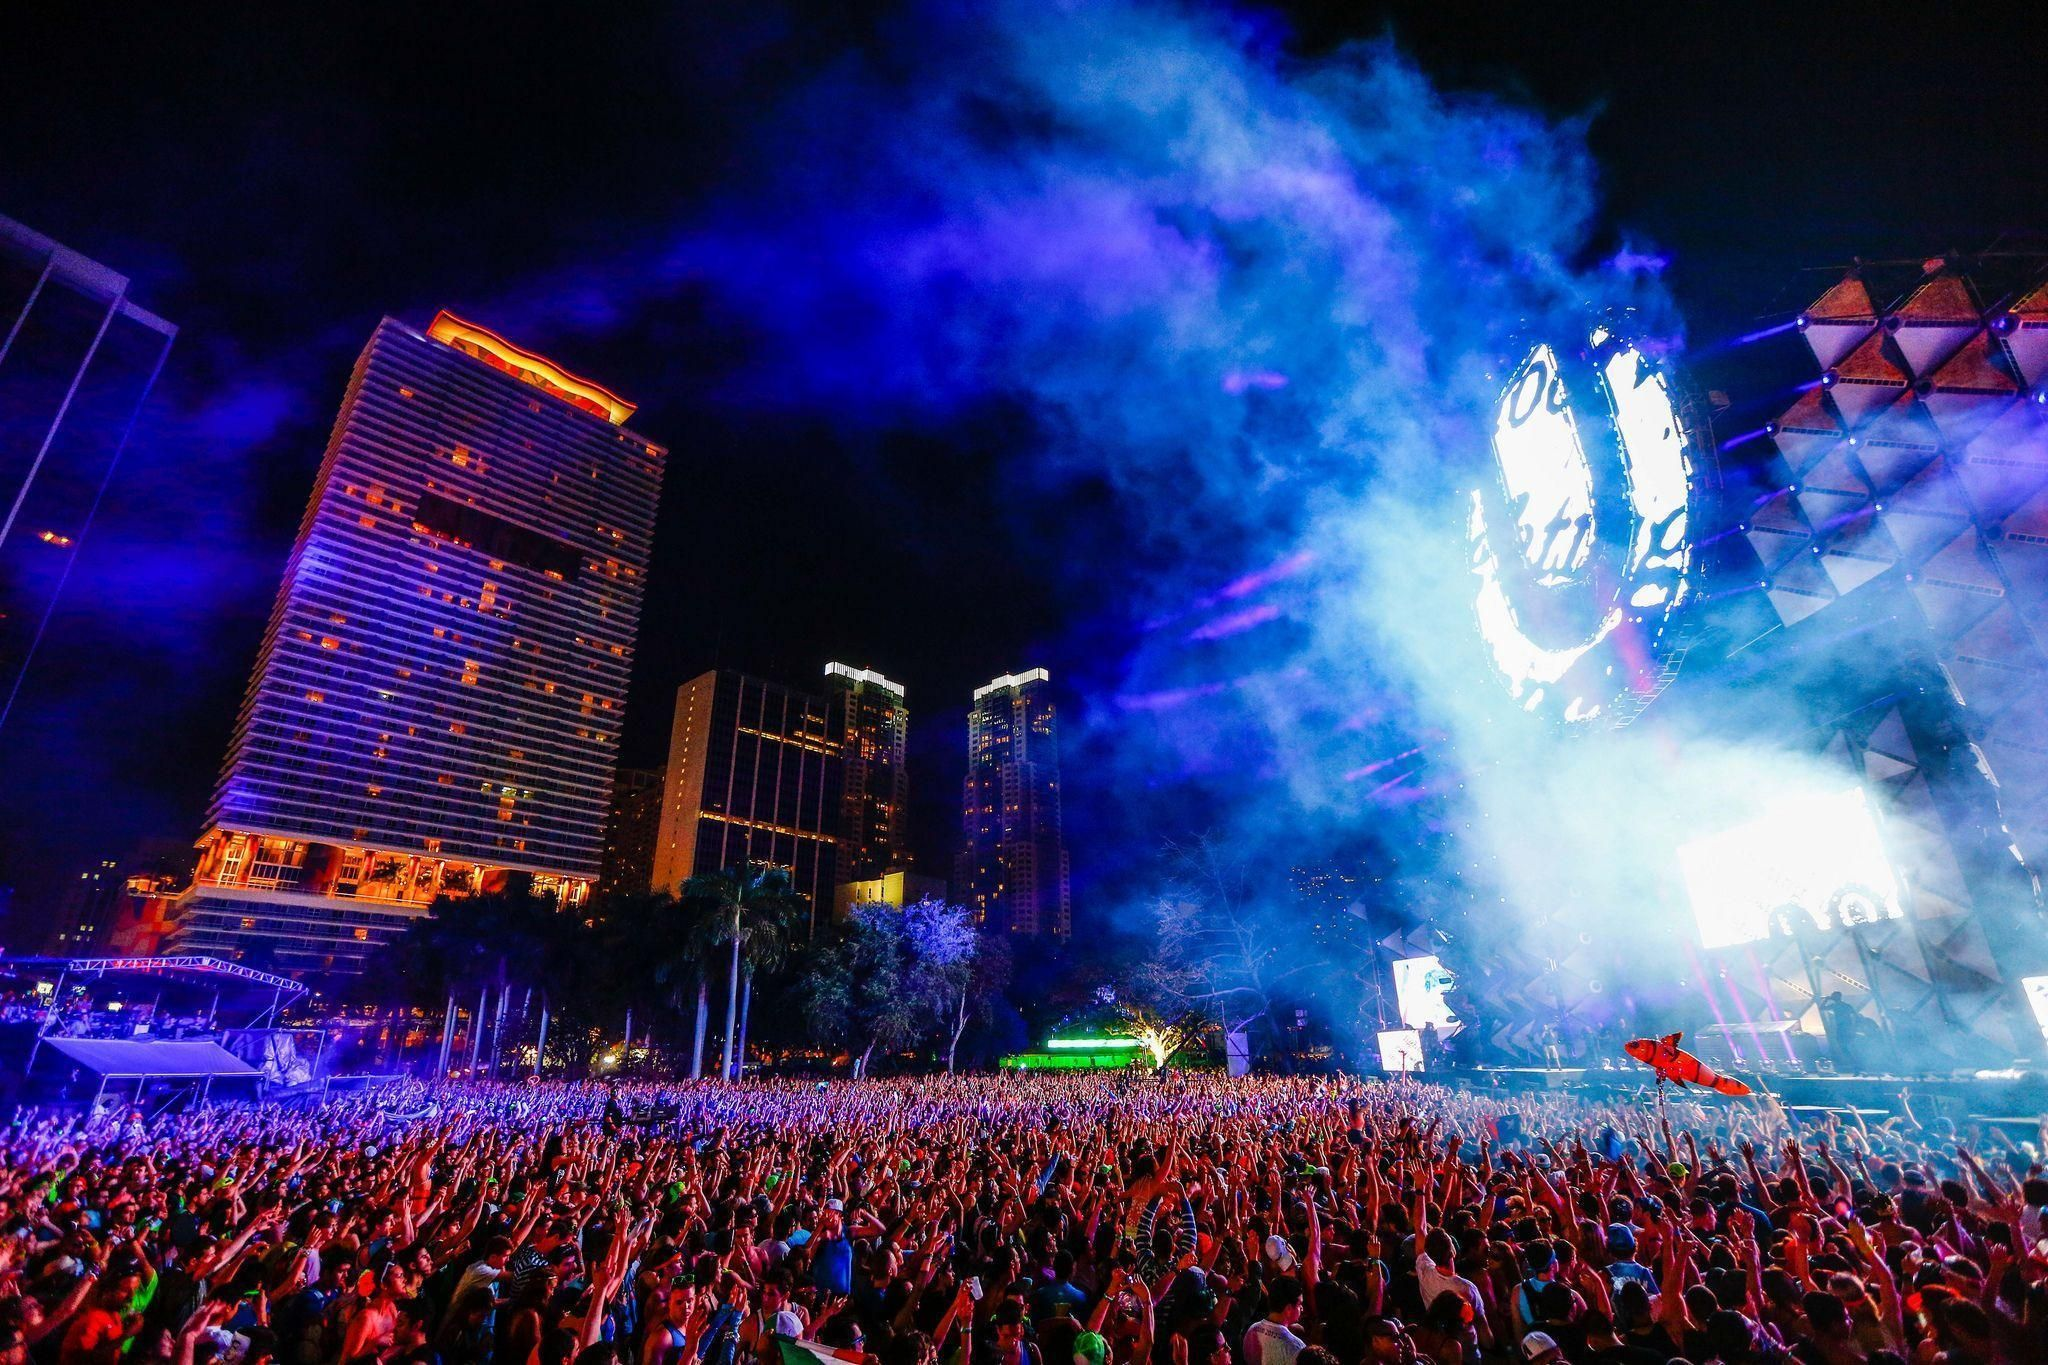 Ultra Music Festival Wallpaper wallpapers 2020 Ultra